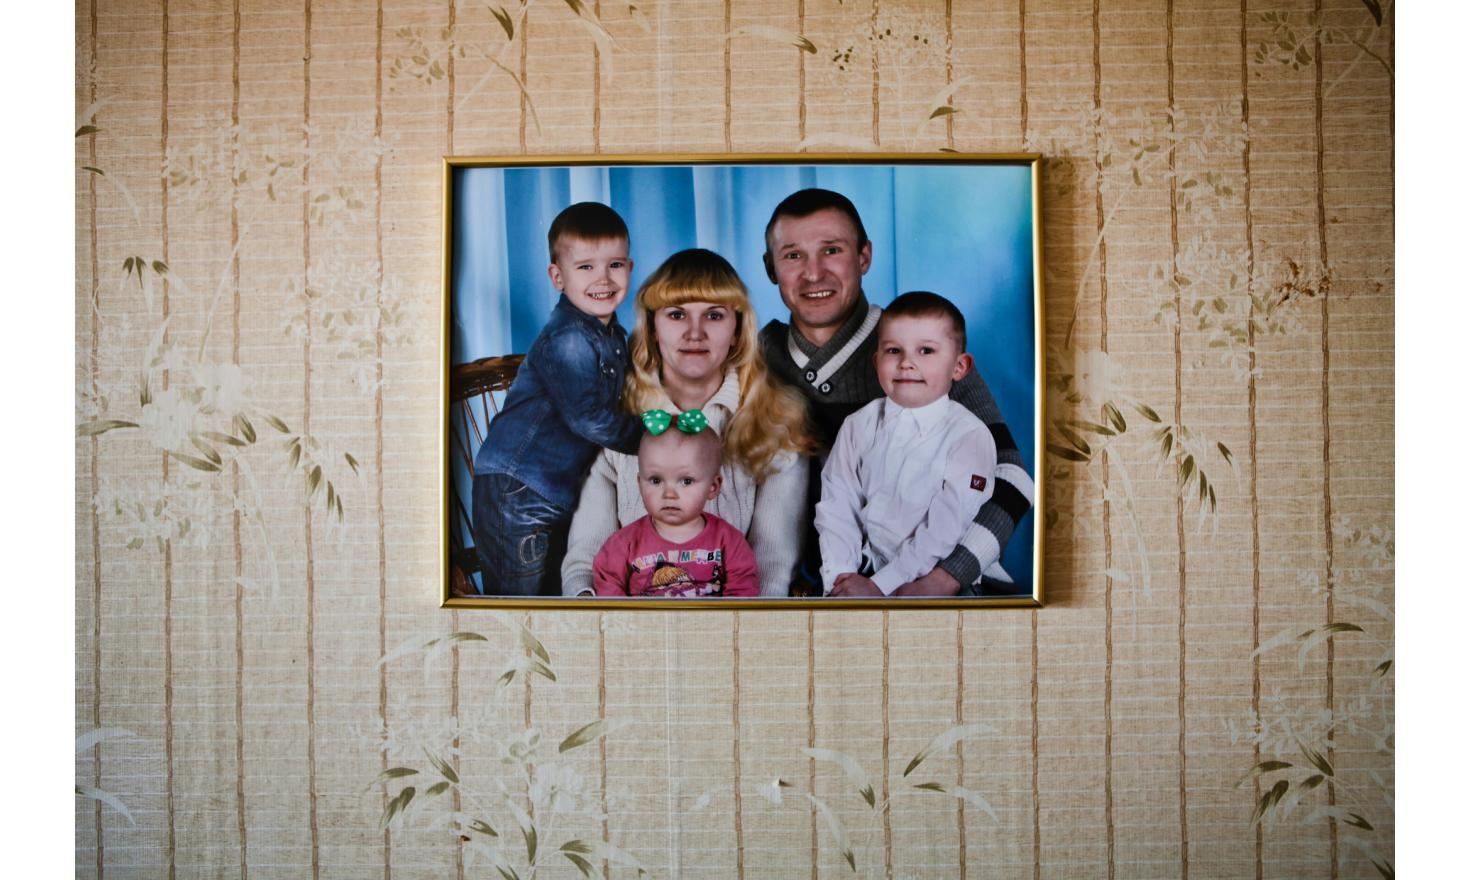 Asia (23 years) the mother of the children and Sergueï their godfather (37) Roma (5 years), Slavik (3) et Kristina (2)  Ania has no parents. She, Sergueï and her three children were forced to leave Luhansk. They first escaped to Murmansk in Russia [...]